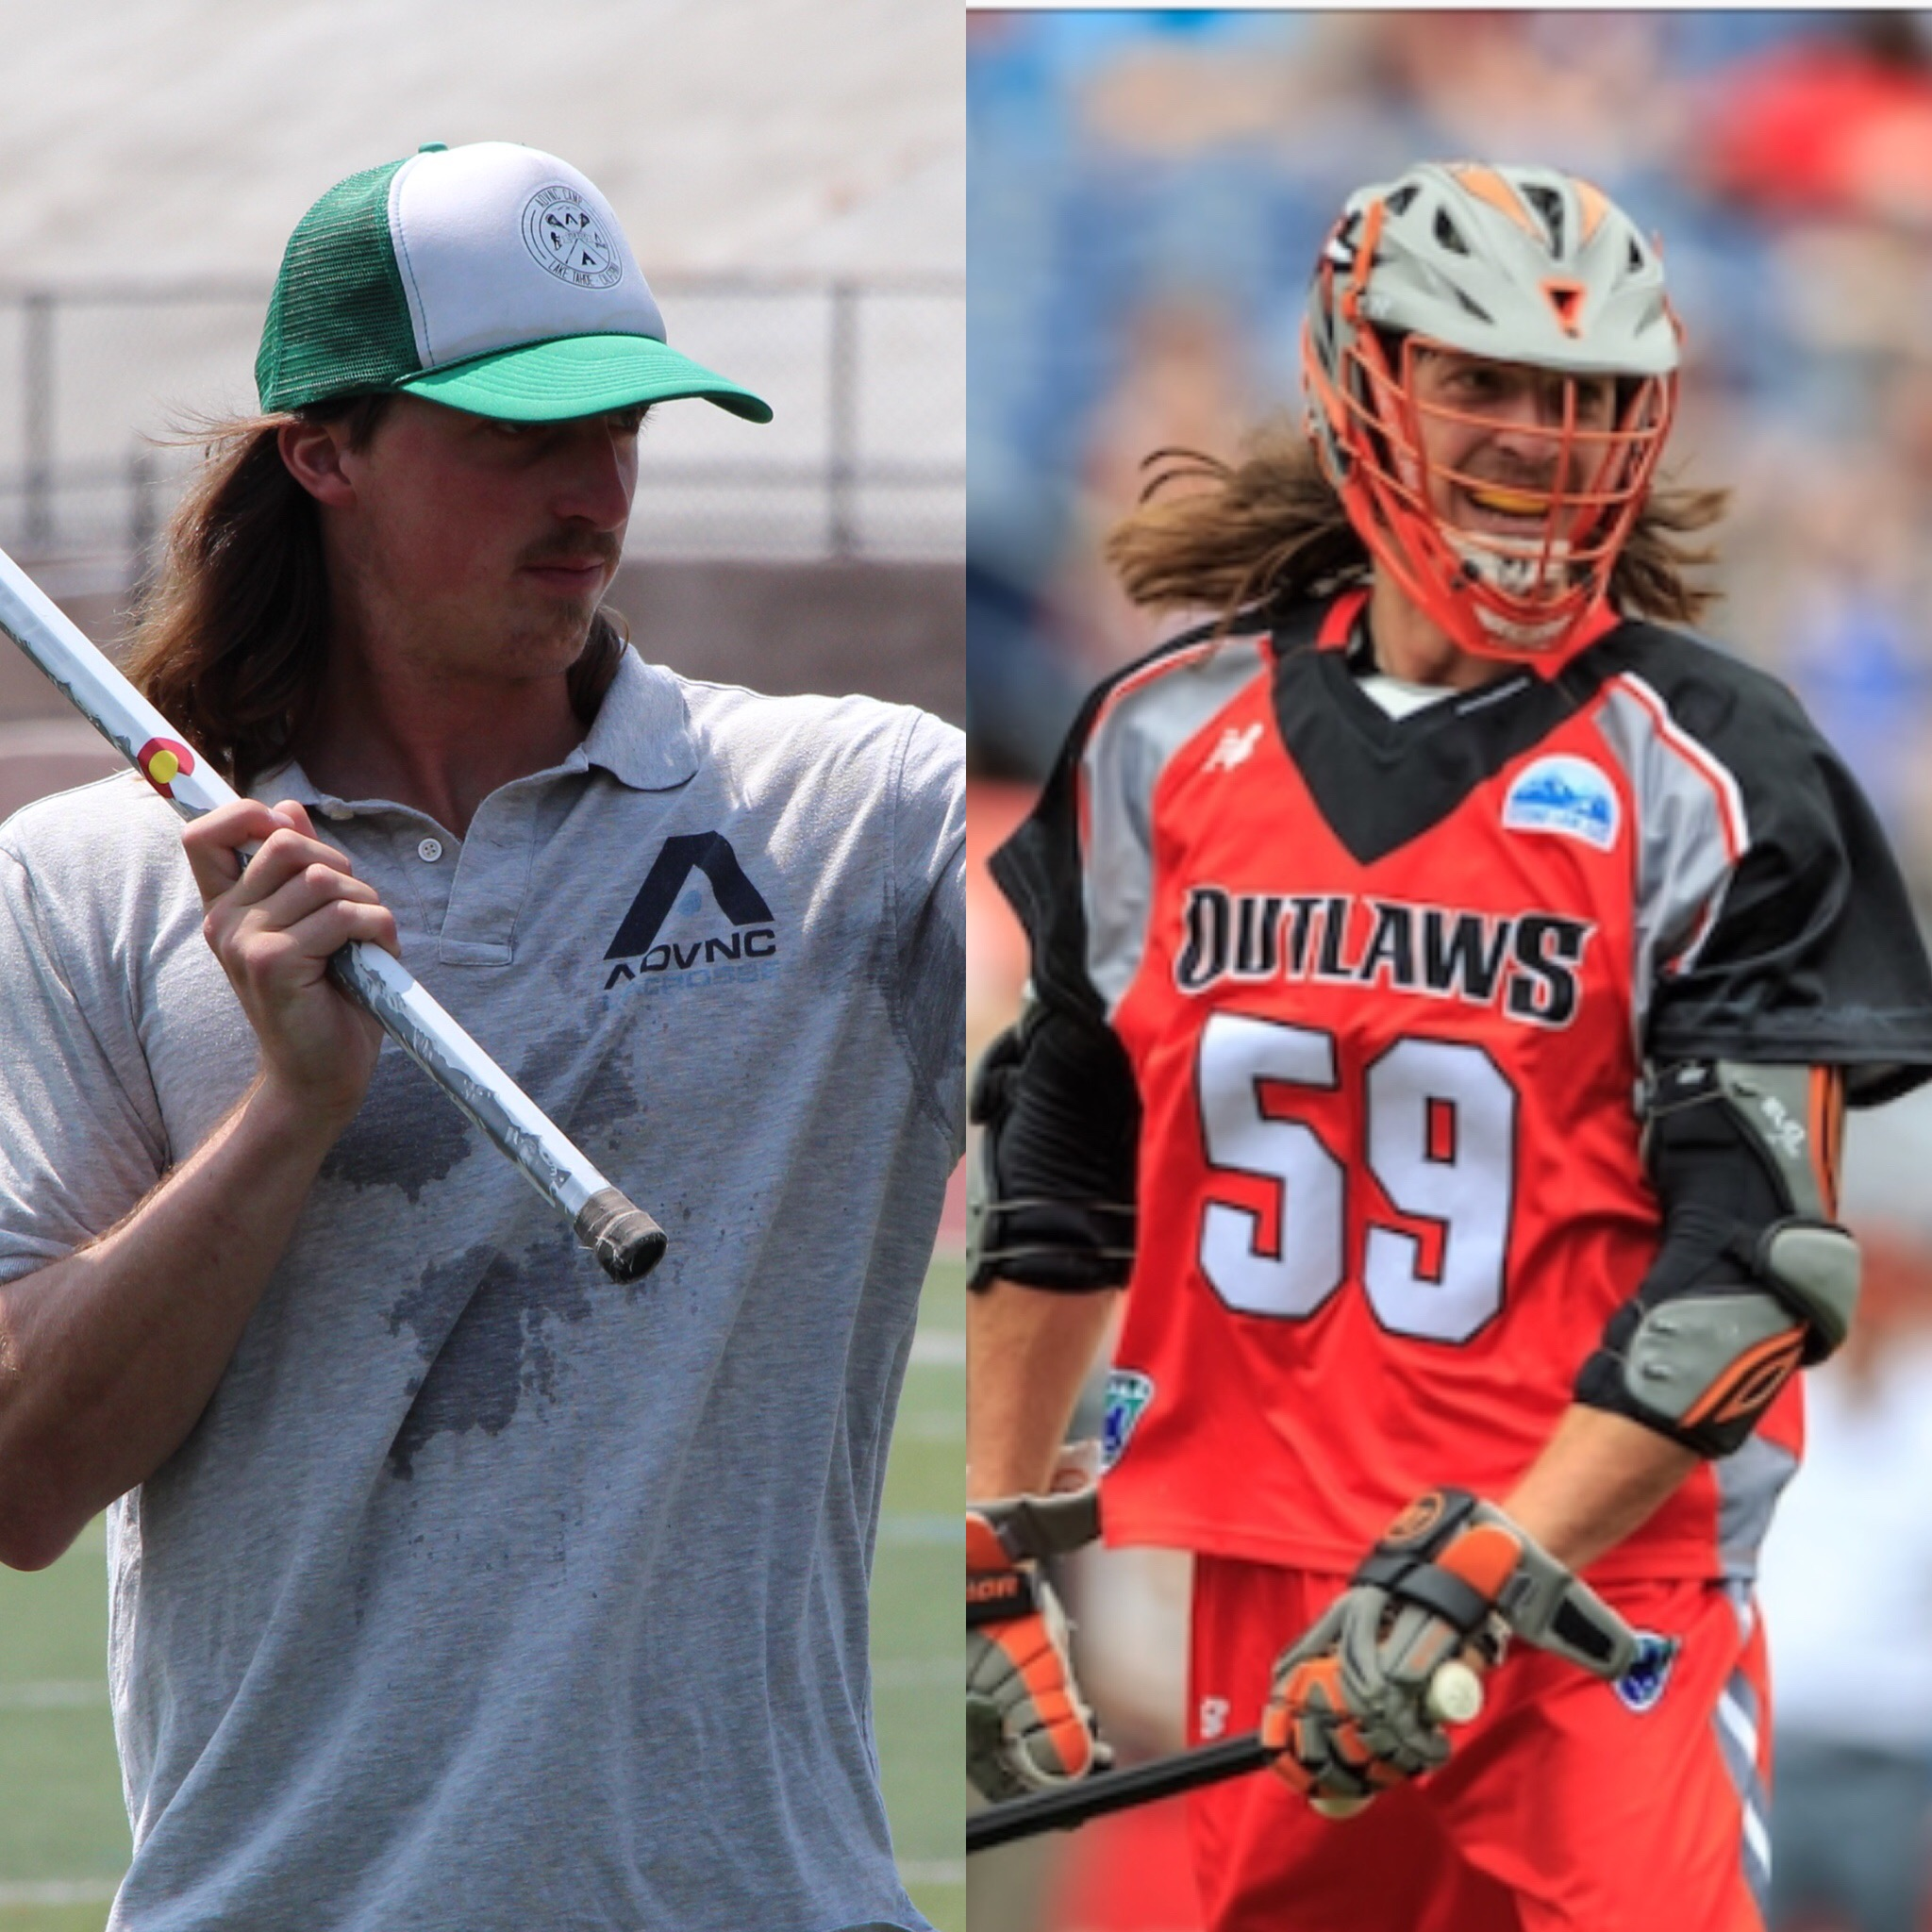 From his upbringing in Davis, CA to his time playing for ADVNC, to his time in Ann Arbor, MI as a member of the Wolverines, to his time in MLL with the Outlaws … Schlosser has come a long way. Hear from the man himself on the ADVNC Lacrosse Podcast.